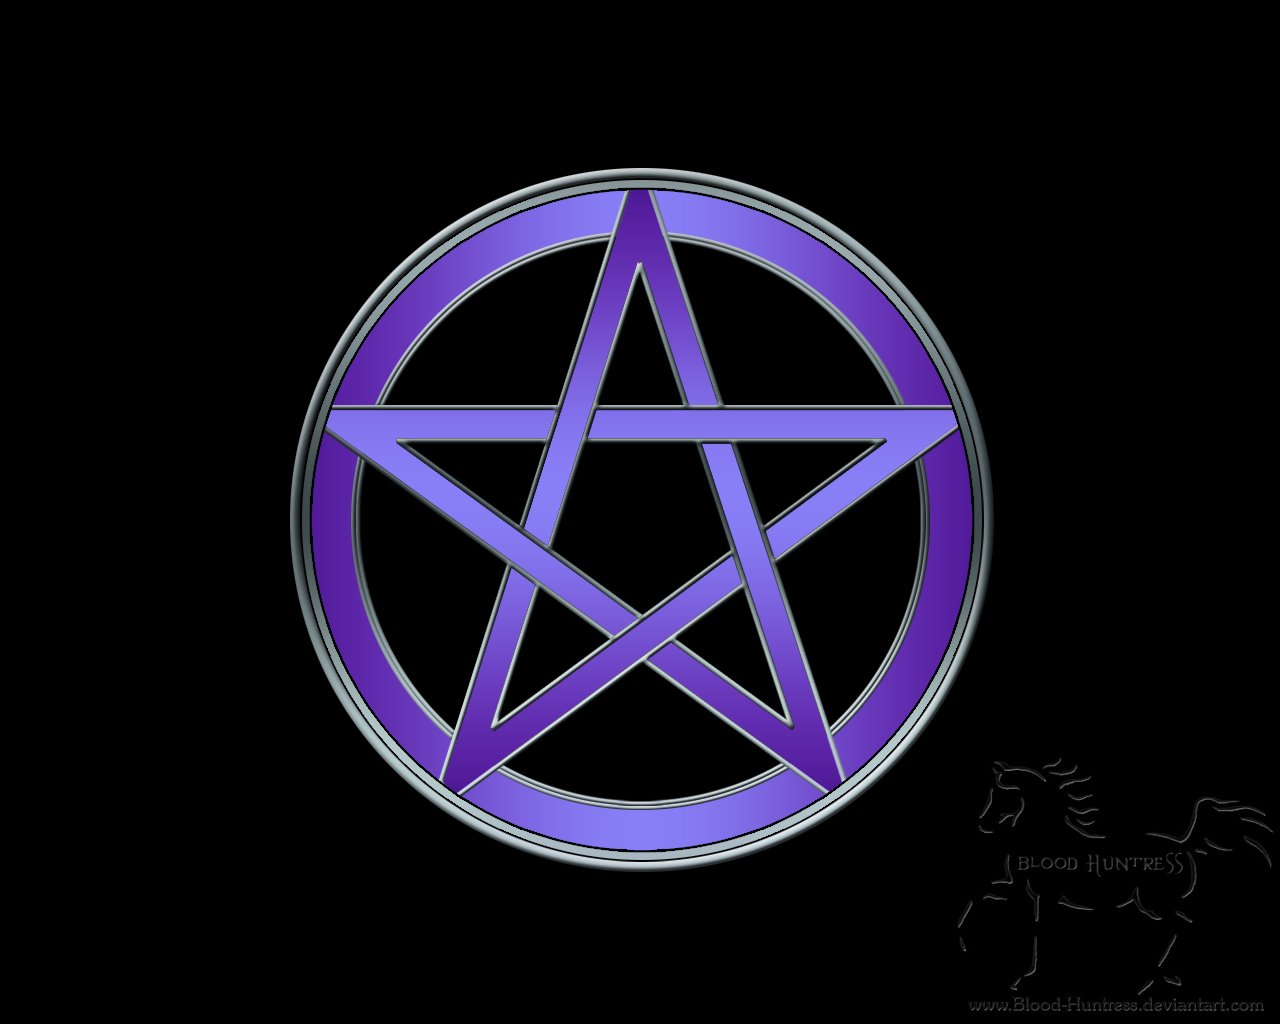 pentagram wallpaper 1280x1024